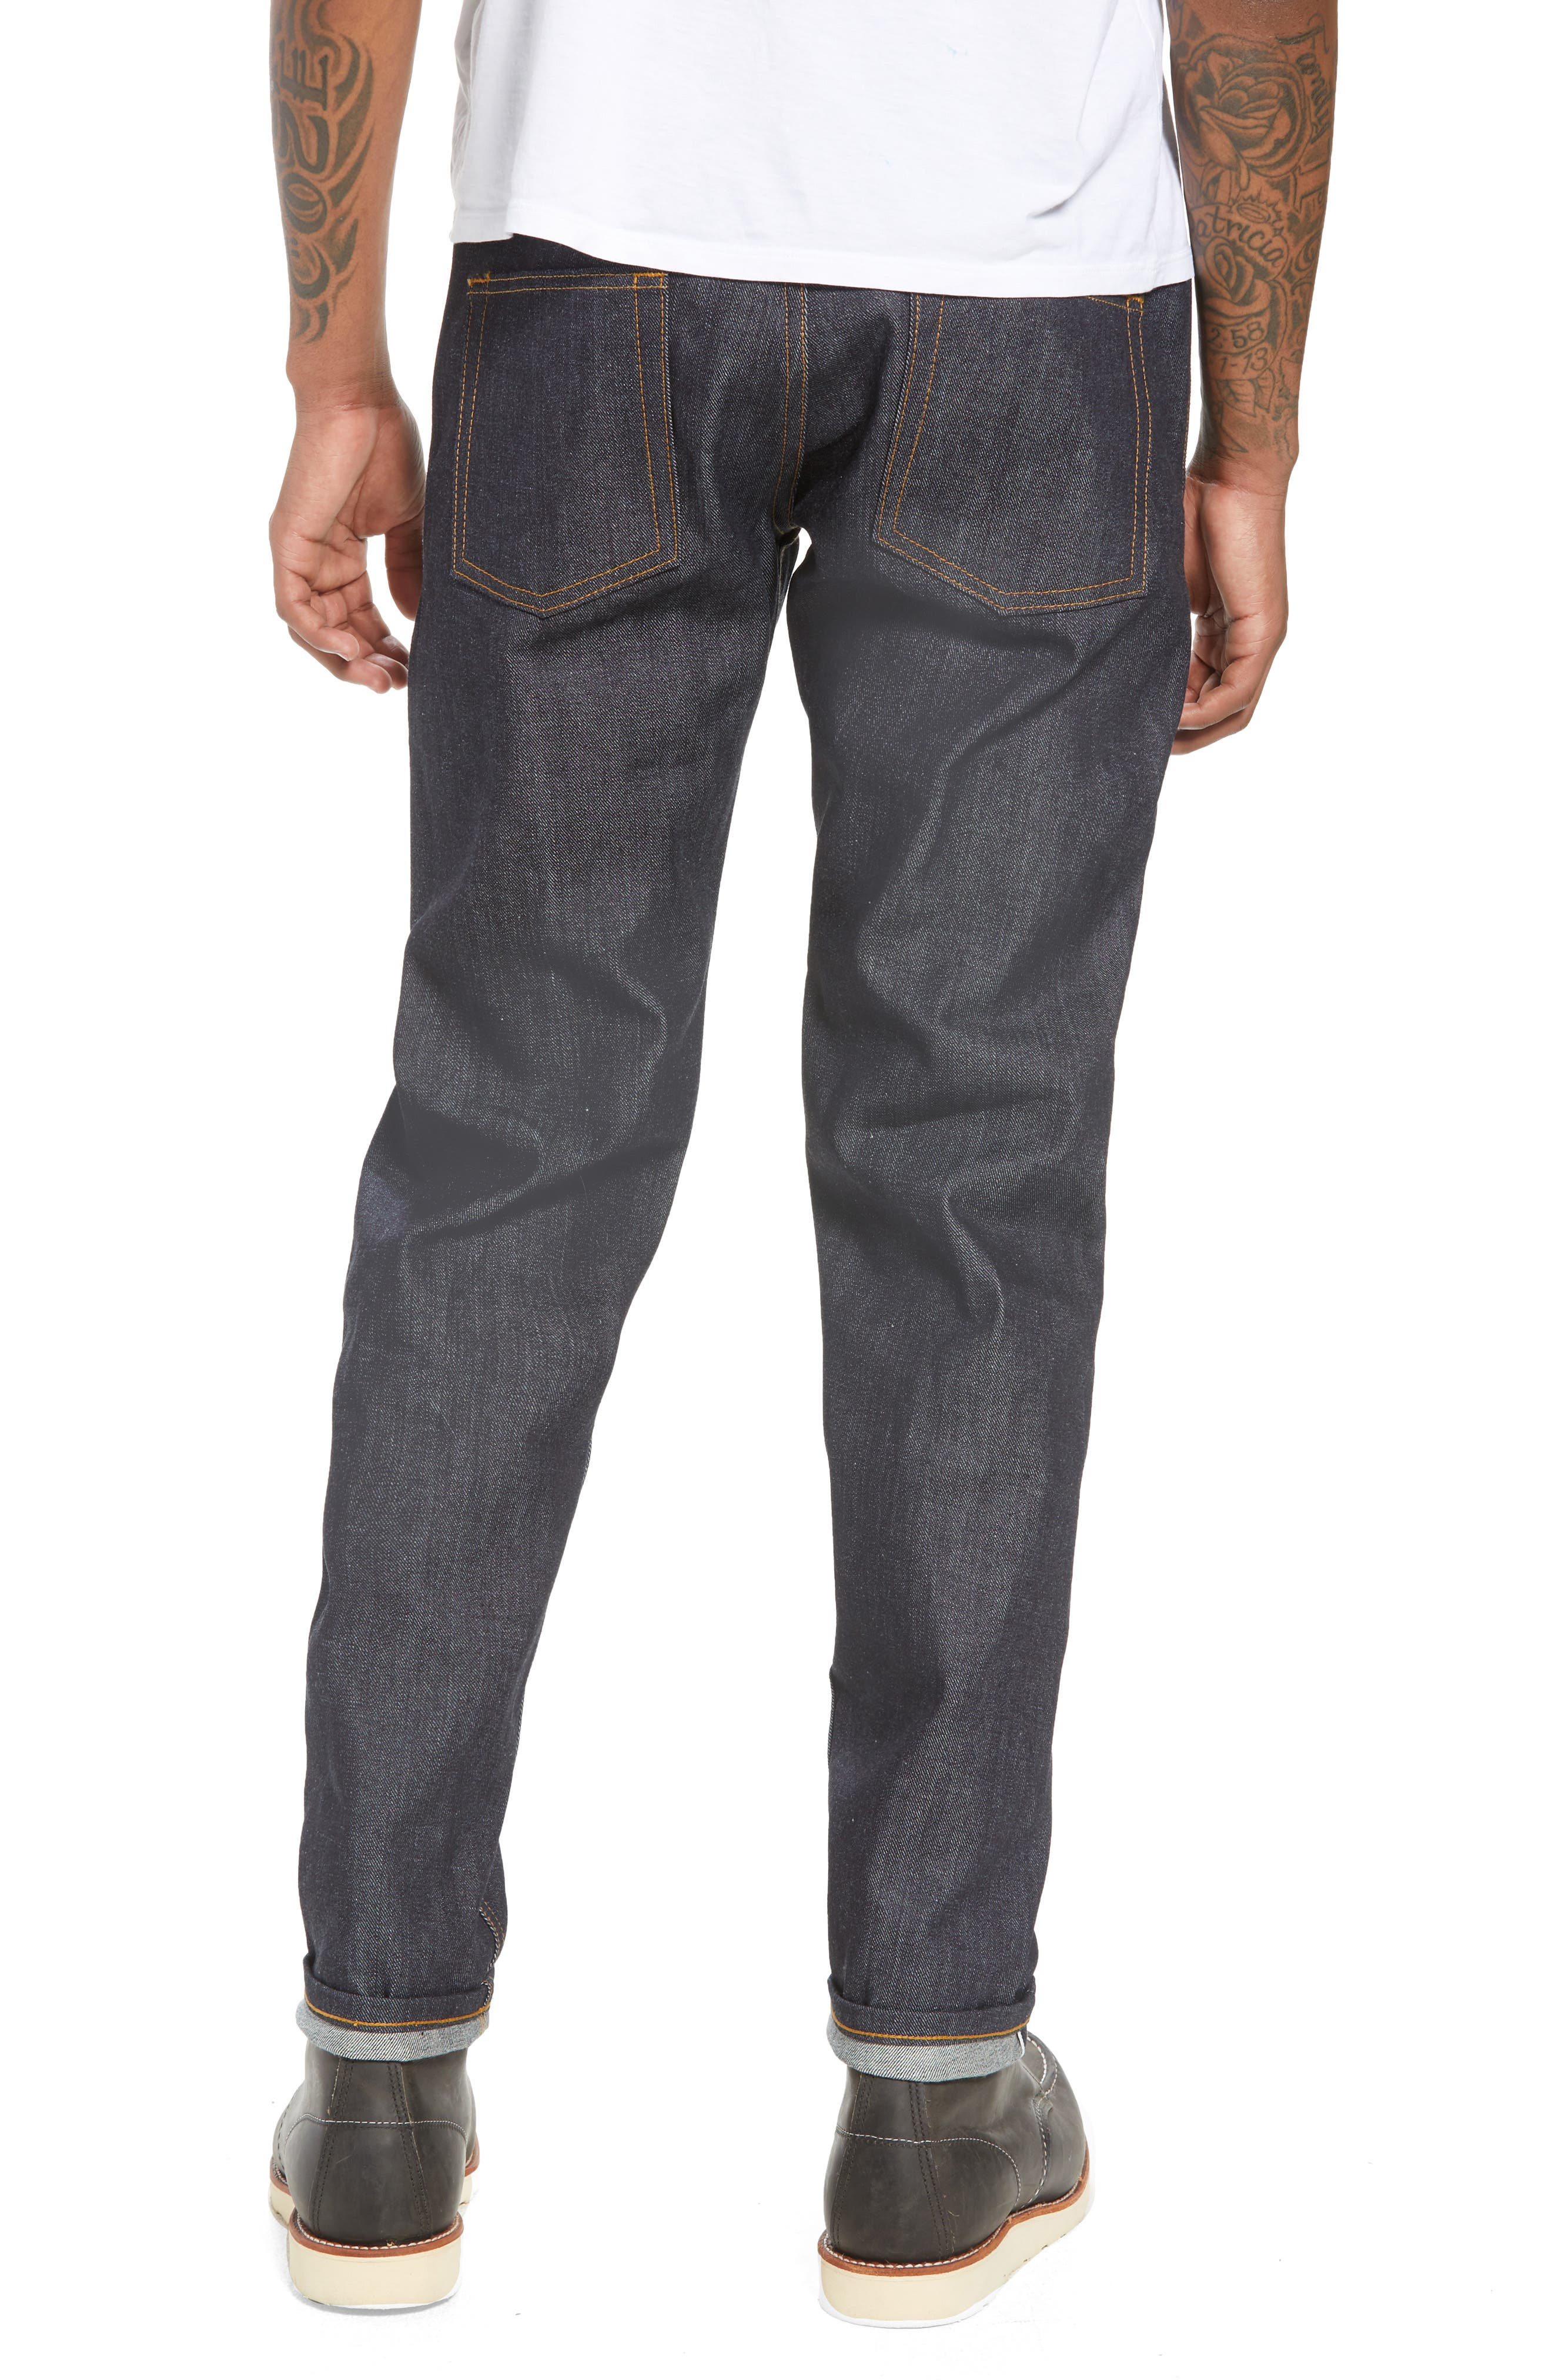 Easy Guy Skinny Fit Jeans,                             Alternate thumbnail 2, color,                             LEFT HAND TWILL SELVEDGE